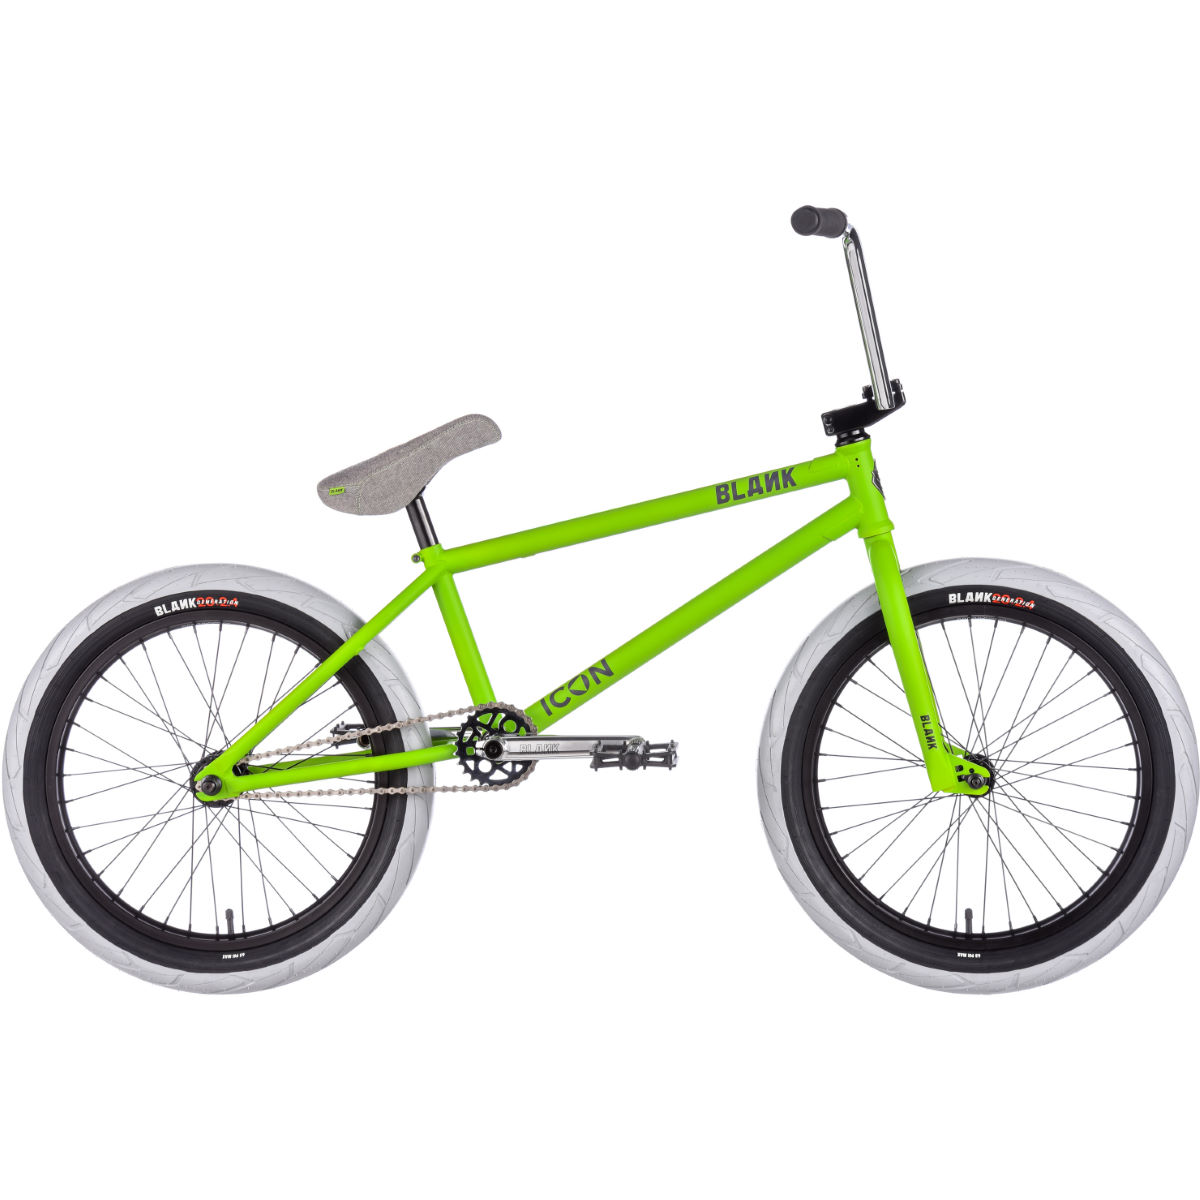 Blank Icon BMX Bike - Bicicletas de BMX Freestyle